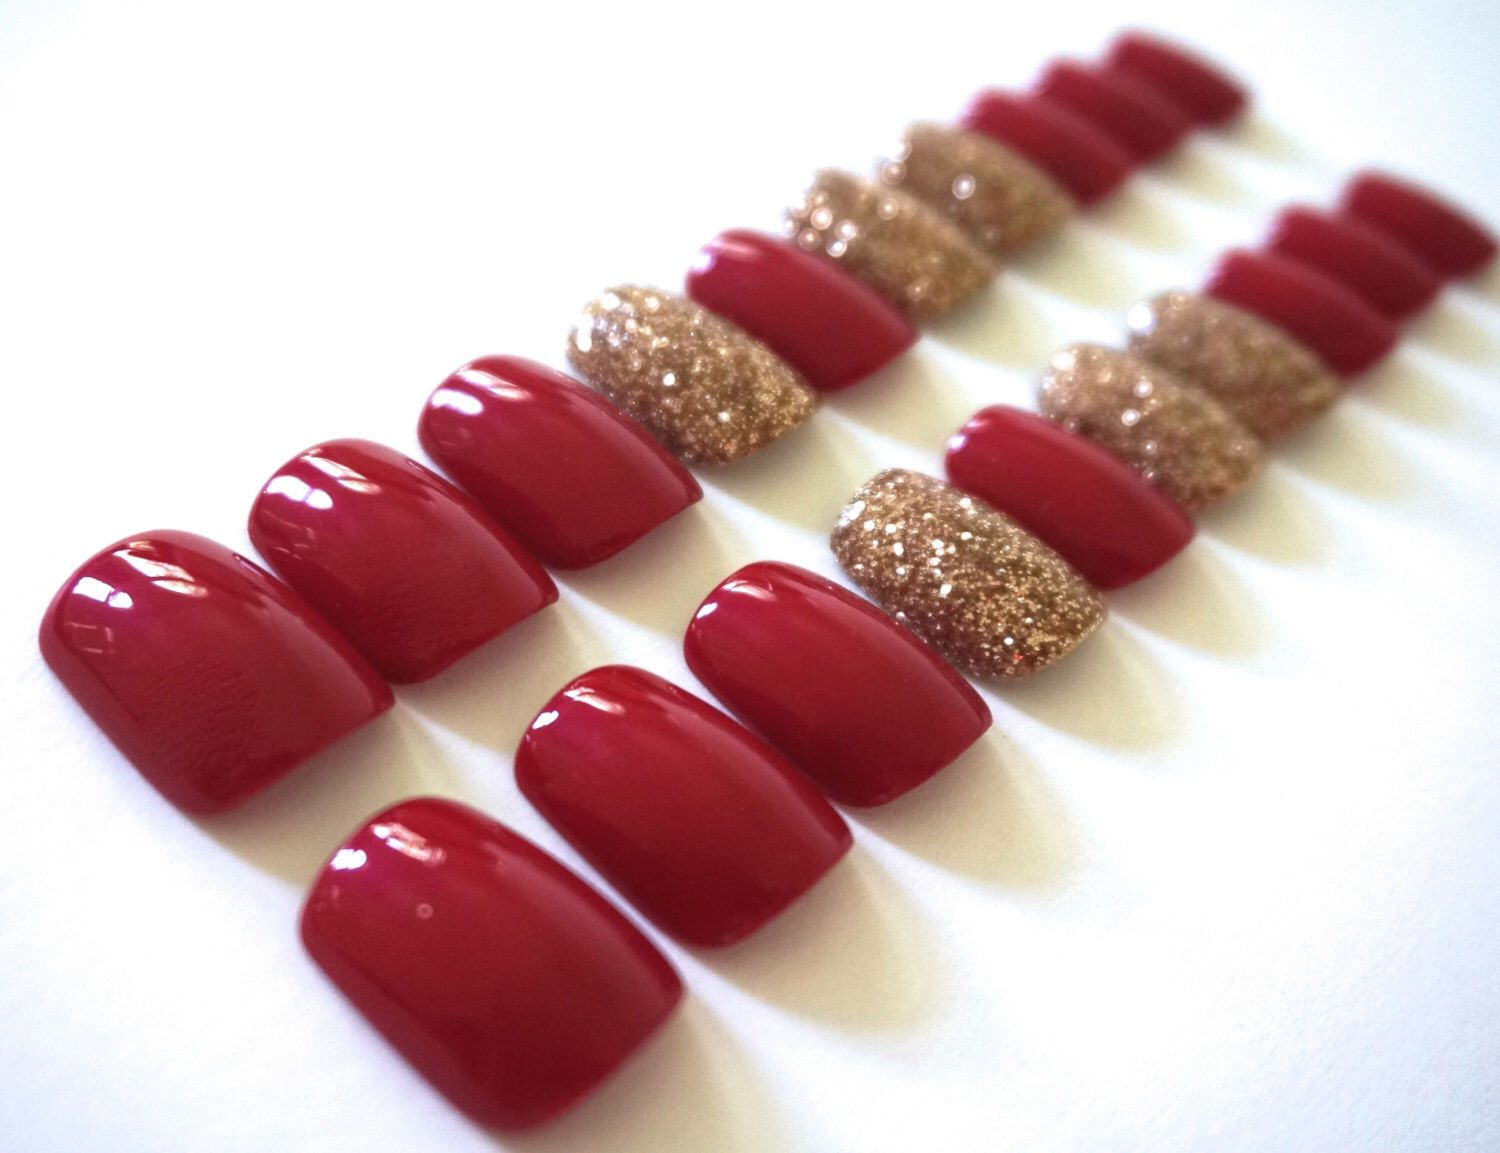 Red Nails- Champagne Accent Nails- Fake/False Nails- Acrylic Nails ...